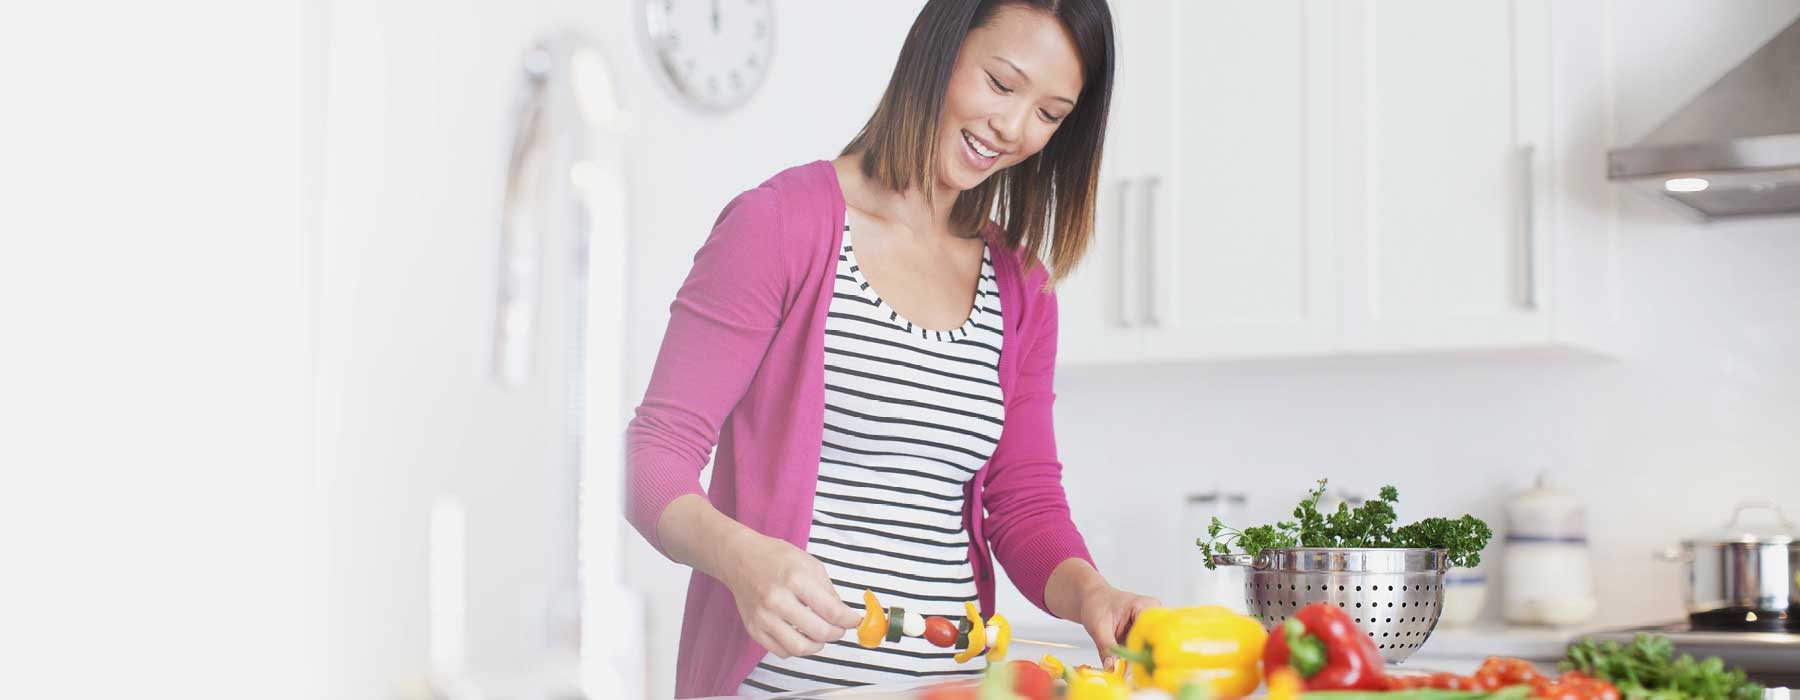 Woman preparing food in kitchen with Skybright Organic Apple Cider Vinegar.